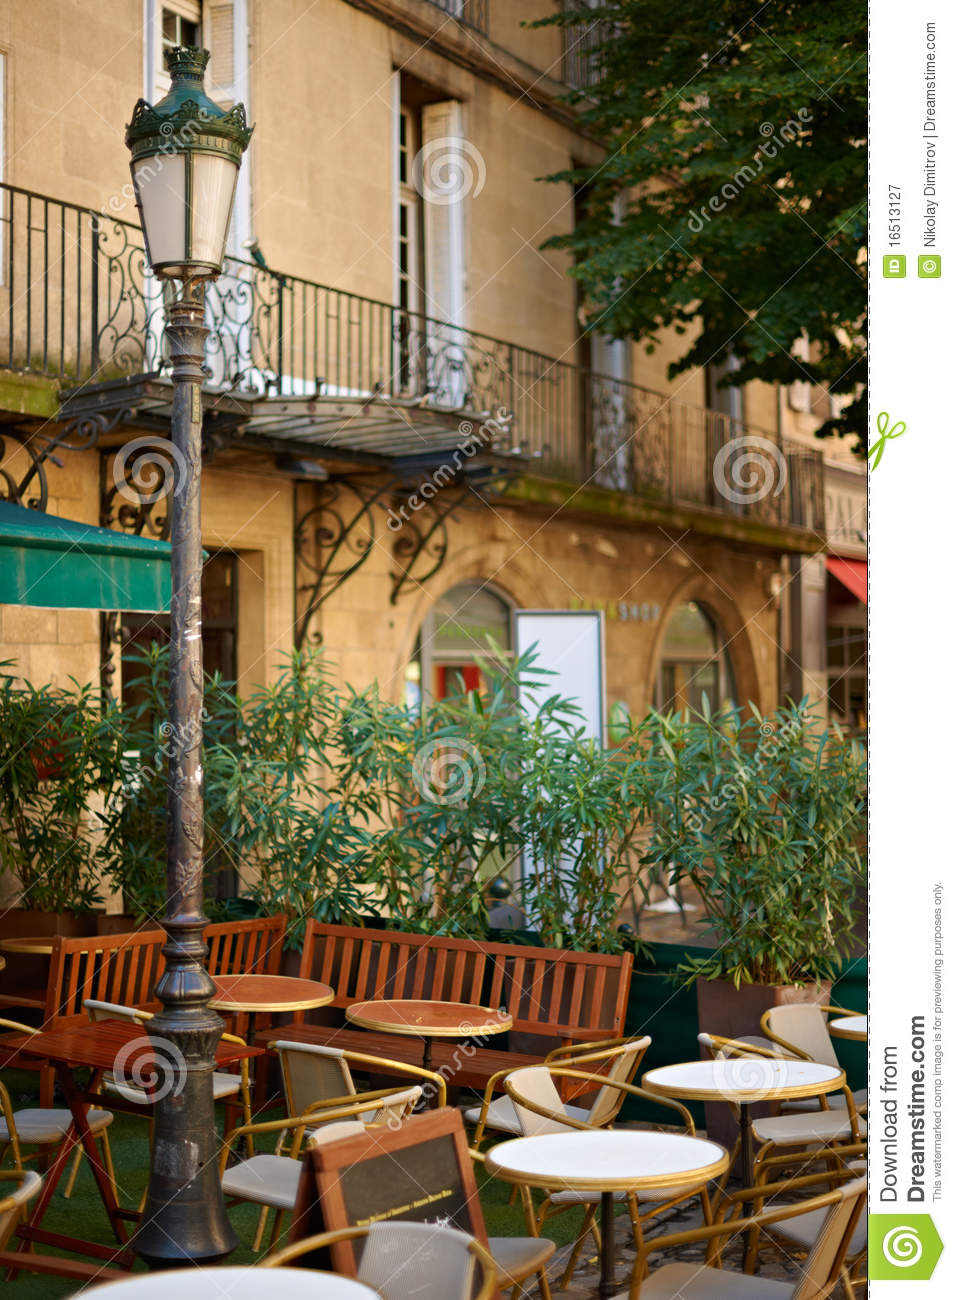 restaurant in aix en provence royalty free stock photography image 16513127. Black Bedroom Furniture Sets. Home Design Ideas